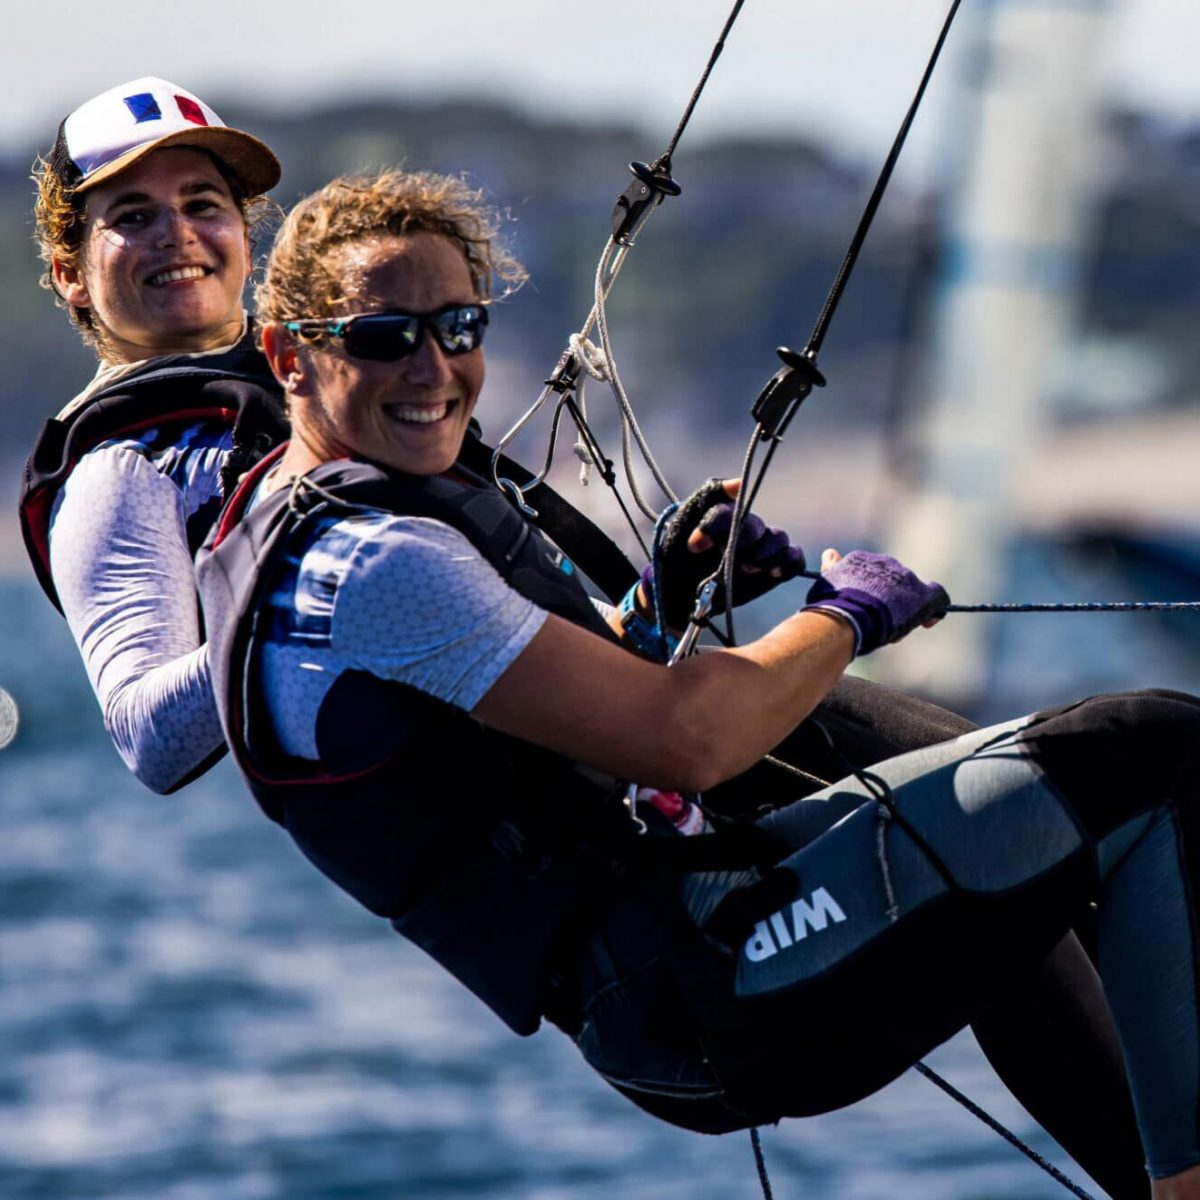 The Tokyo 2020 Olympic Sailing Competition will see 350 athletes from 65 nations race across the ten Olympic disciplines. Enoshima Yacht Harbour, the host venue of the Tokyo 1964 Olympic Sailing Competition, will once again welcome sailors from 25 July to 4 August 2021.   21 July, 2021 © Sailing Energy / World Sailing